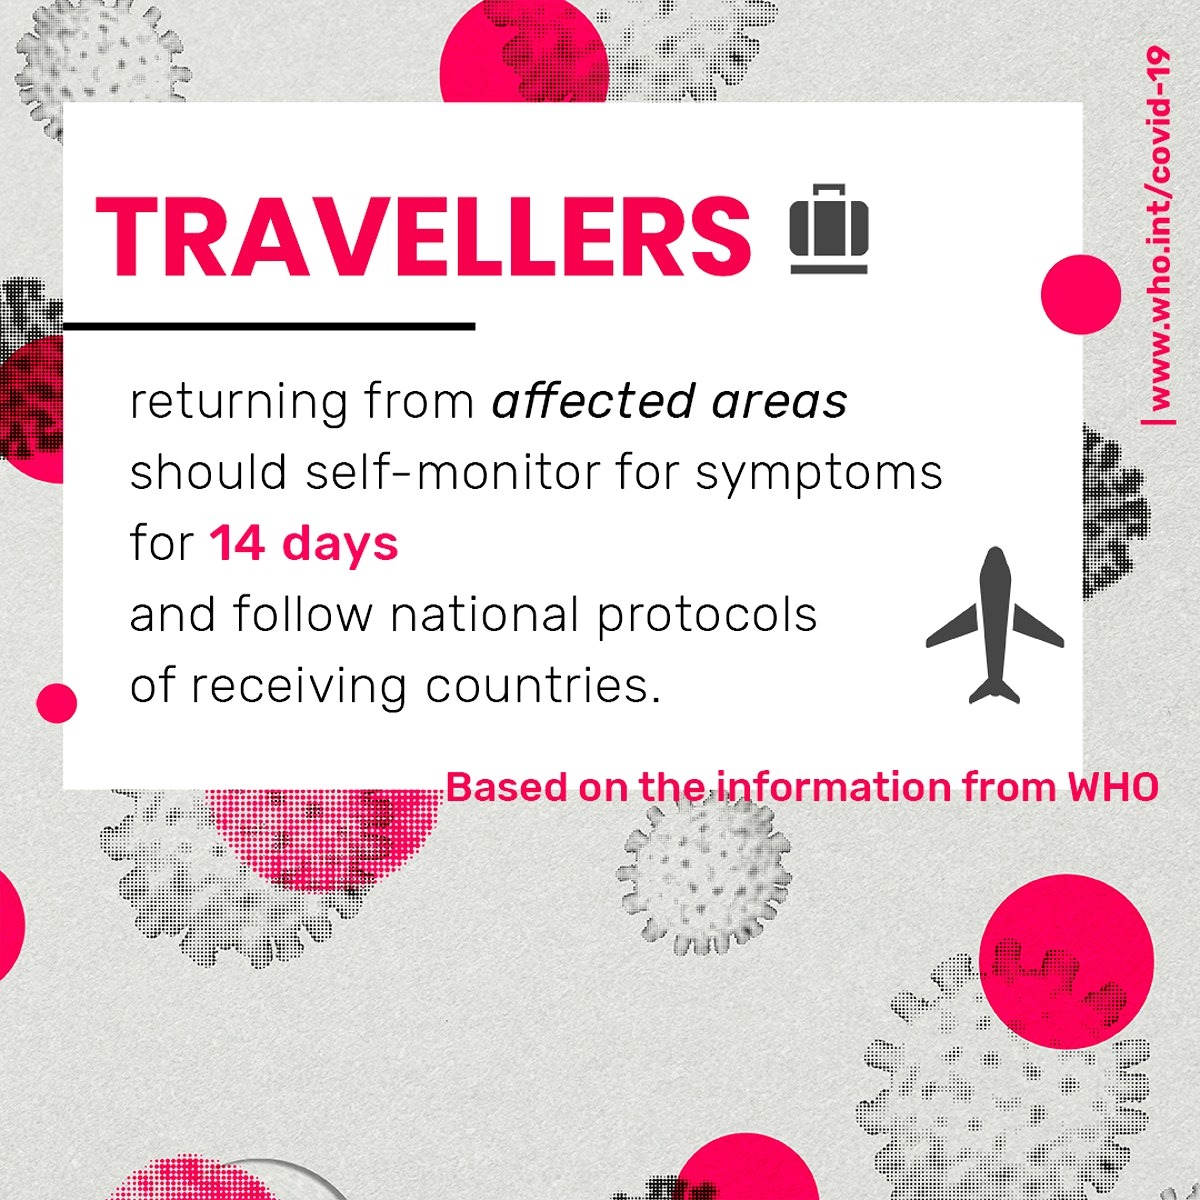 Abroad traveller returning from affected areas should self-monitor for symptoms for 14 days social template source WHO